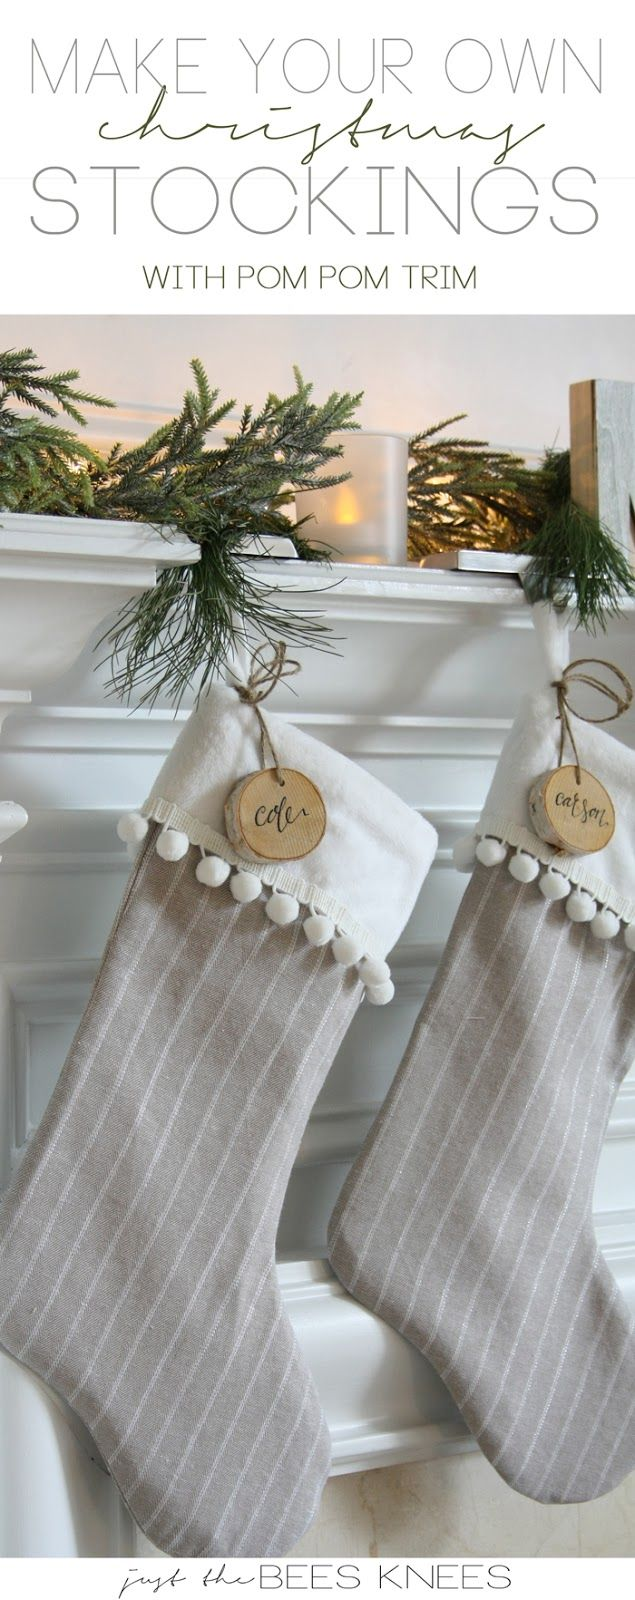 DIY Pom Pom Trim Stocking Tutorial. A quick and easy christmas craft idea! LOVE the fur cuff and wood tags too.